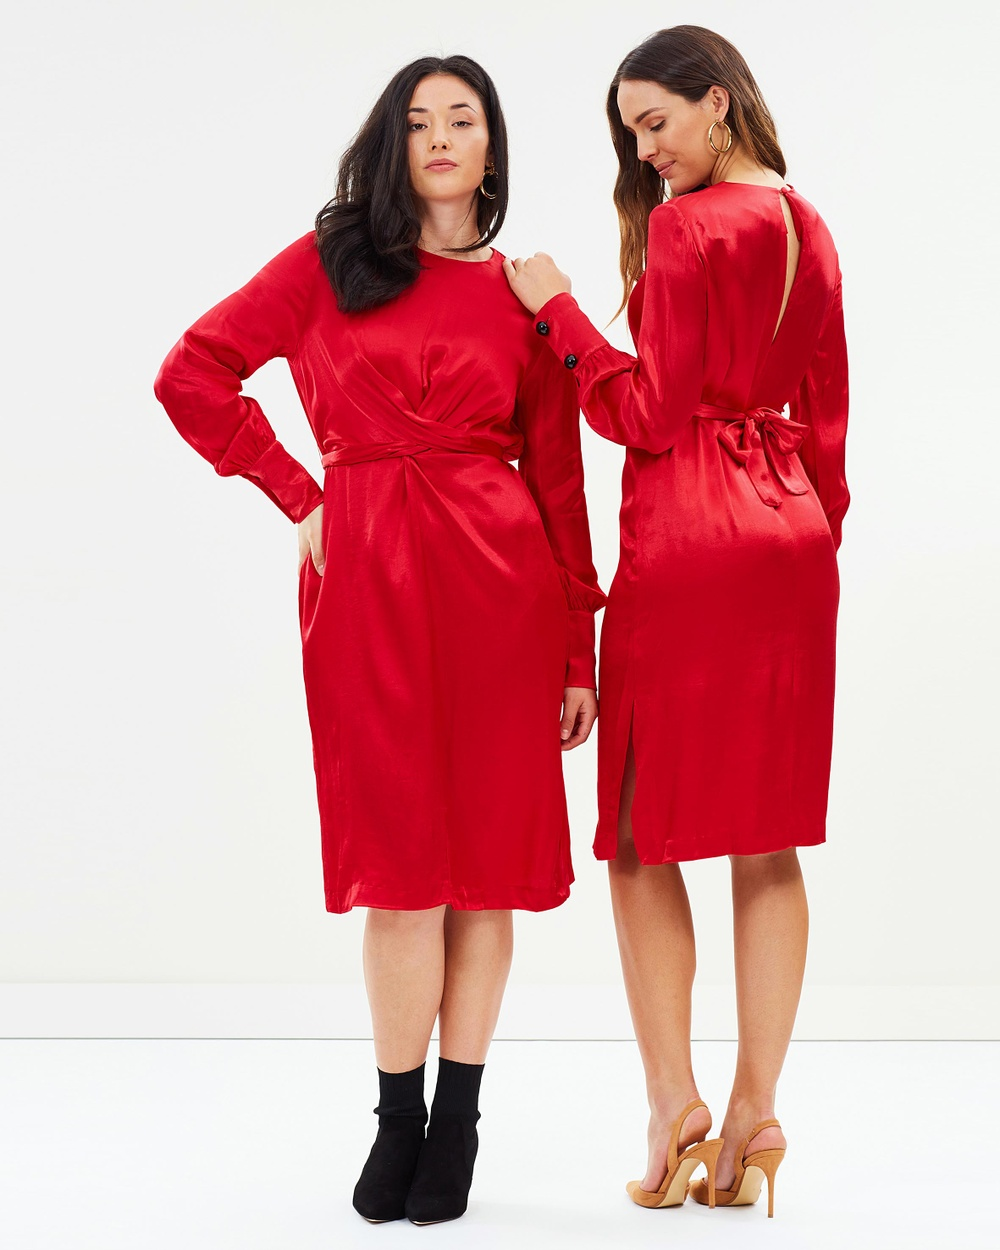 M.N.G Natalie Dress Dresses Rojo Natalie Dress